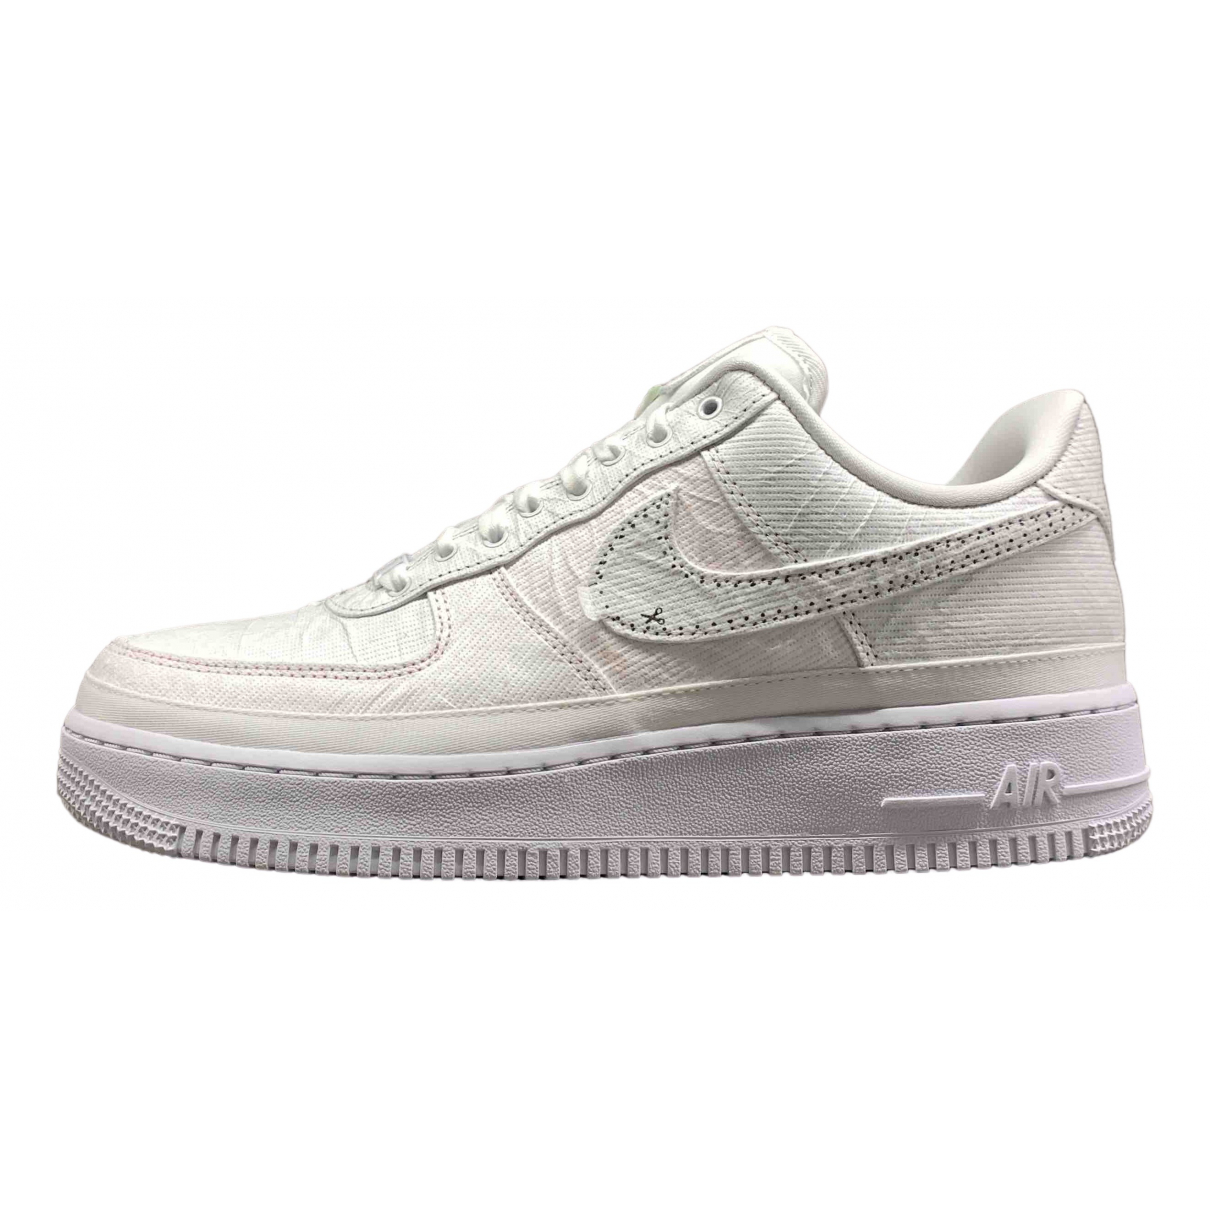 Nike Air Force 1 White Leather Trainers for Men 42 EU